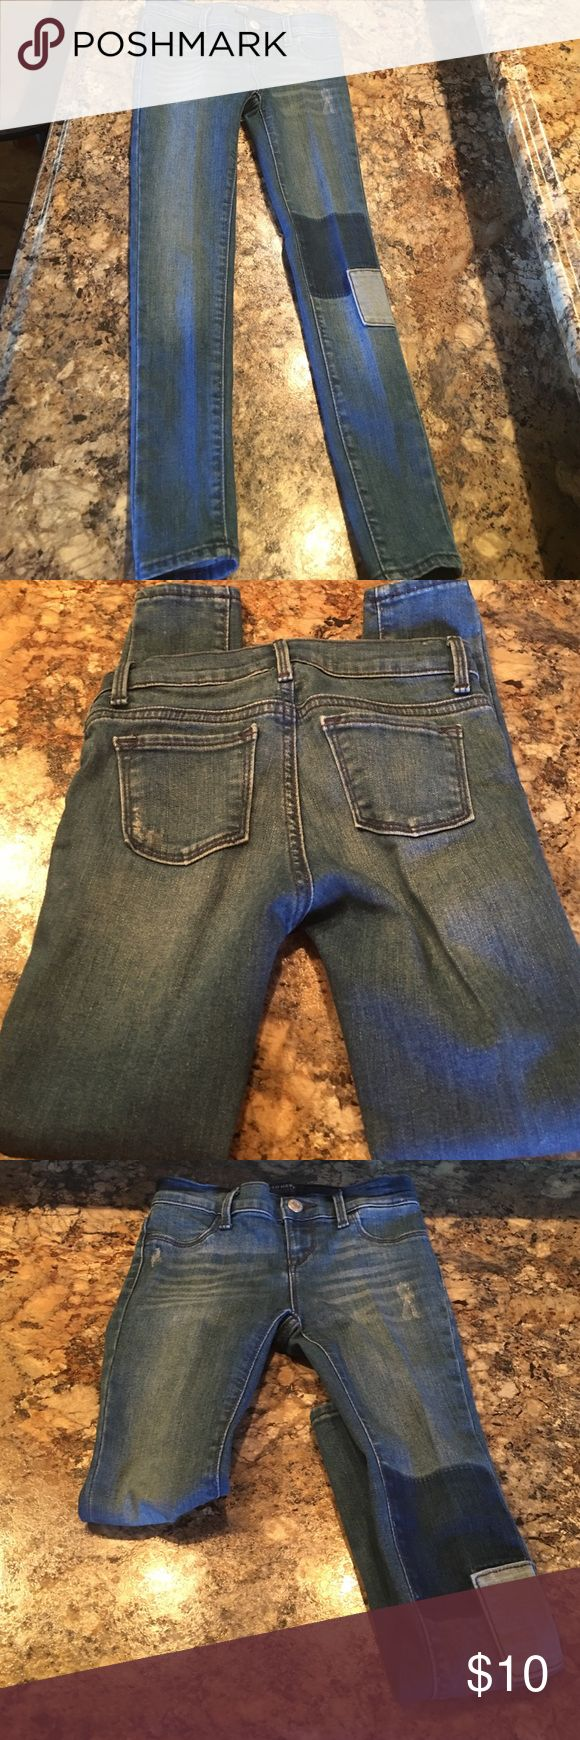 Girls rockstar jeggins Girls size 7 old navy's rockstar jeggins. Jeggins have a patch work design on left leg also have a distress look as well. Jeggins have snap fastener and belt loops as well as pockets. Have been worn but in good condition Old Navy Bottoms Jeans